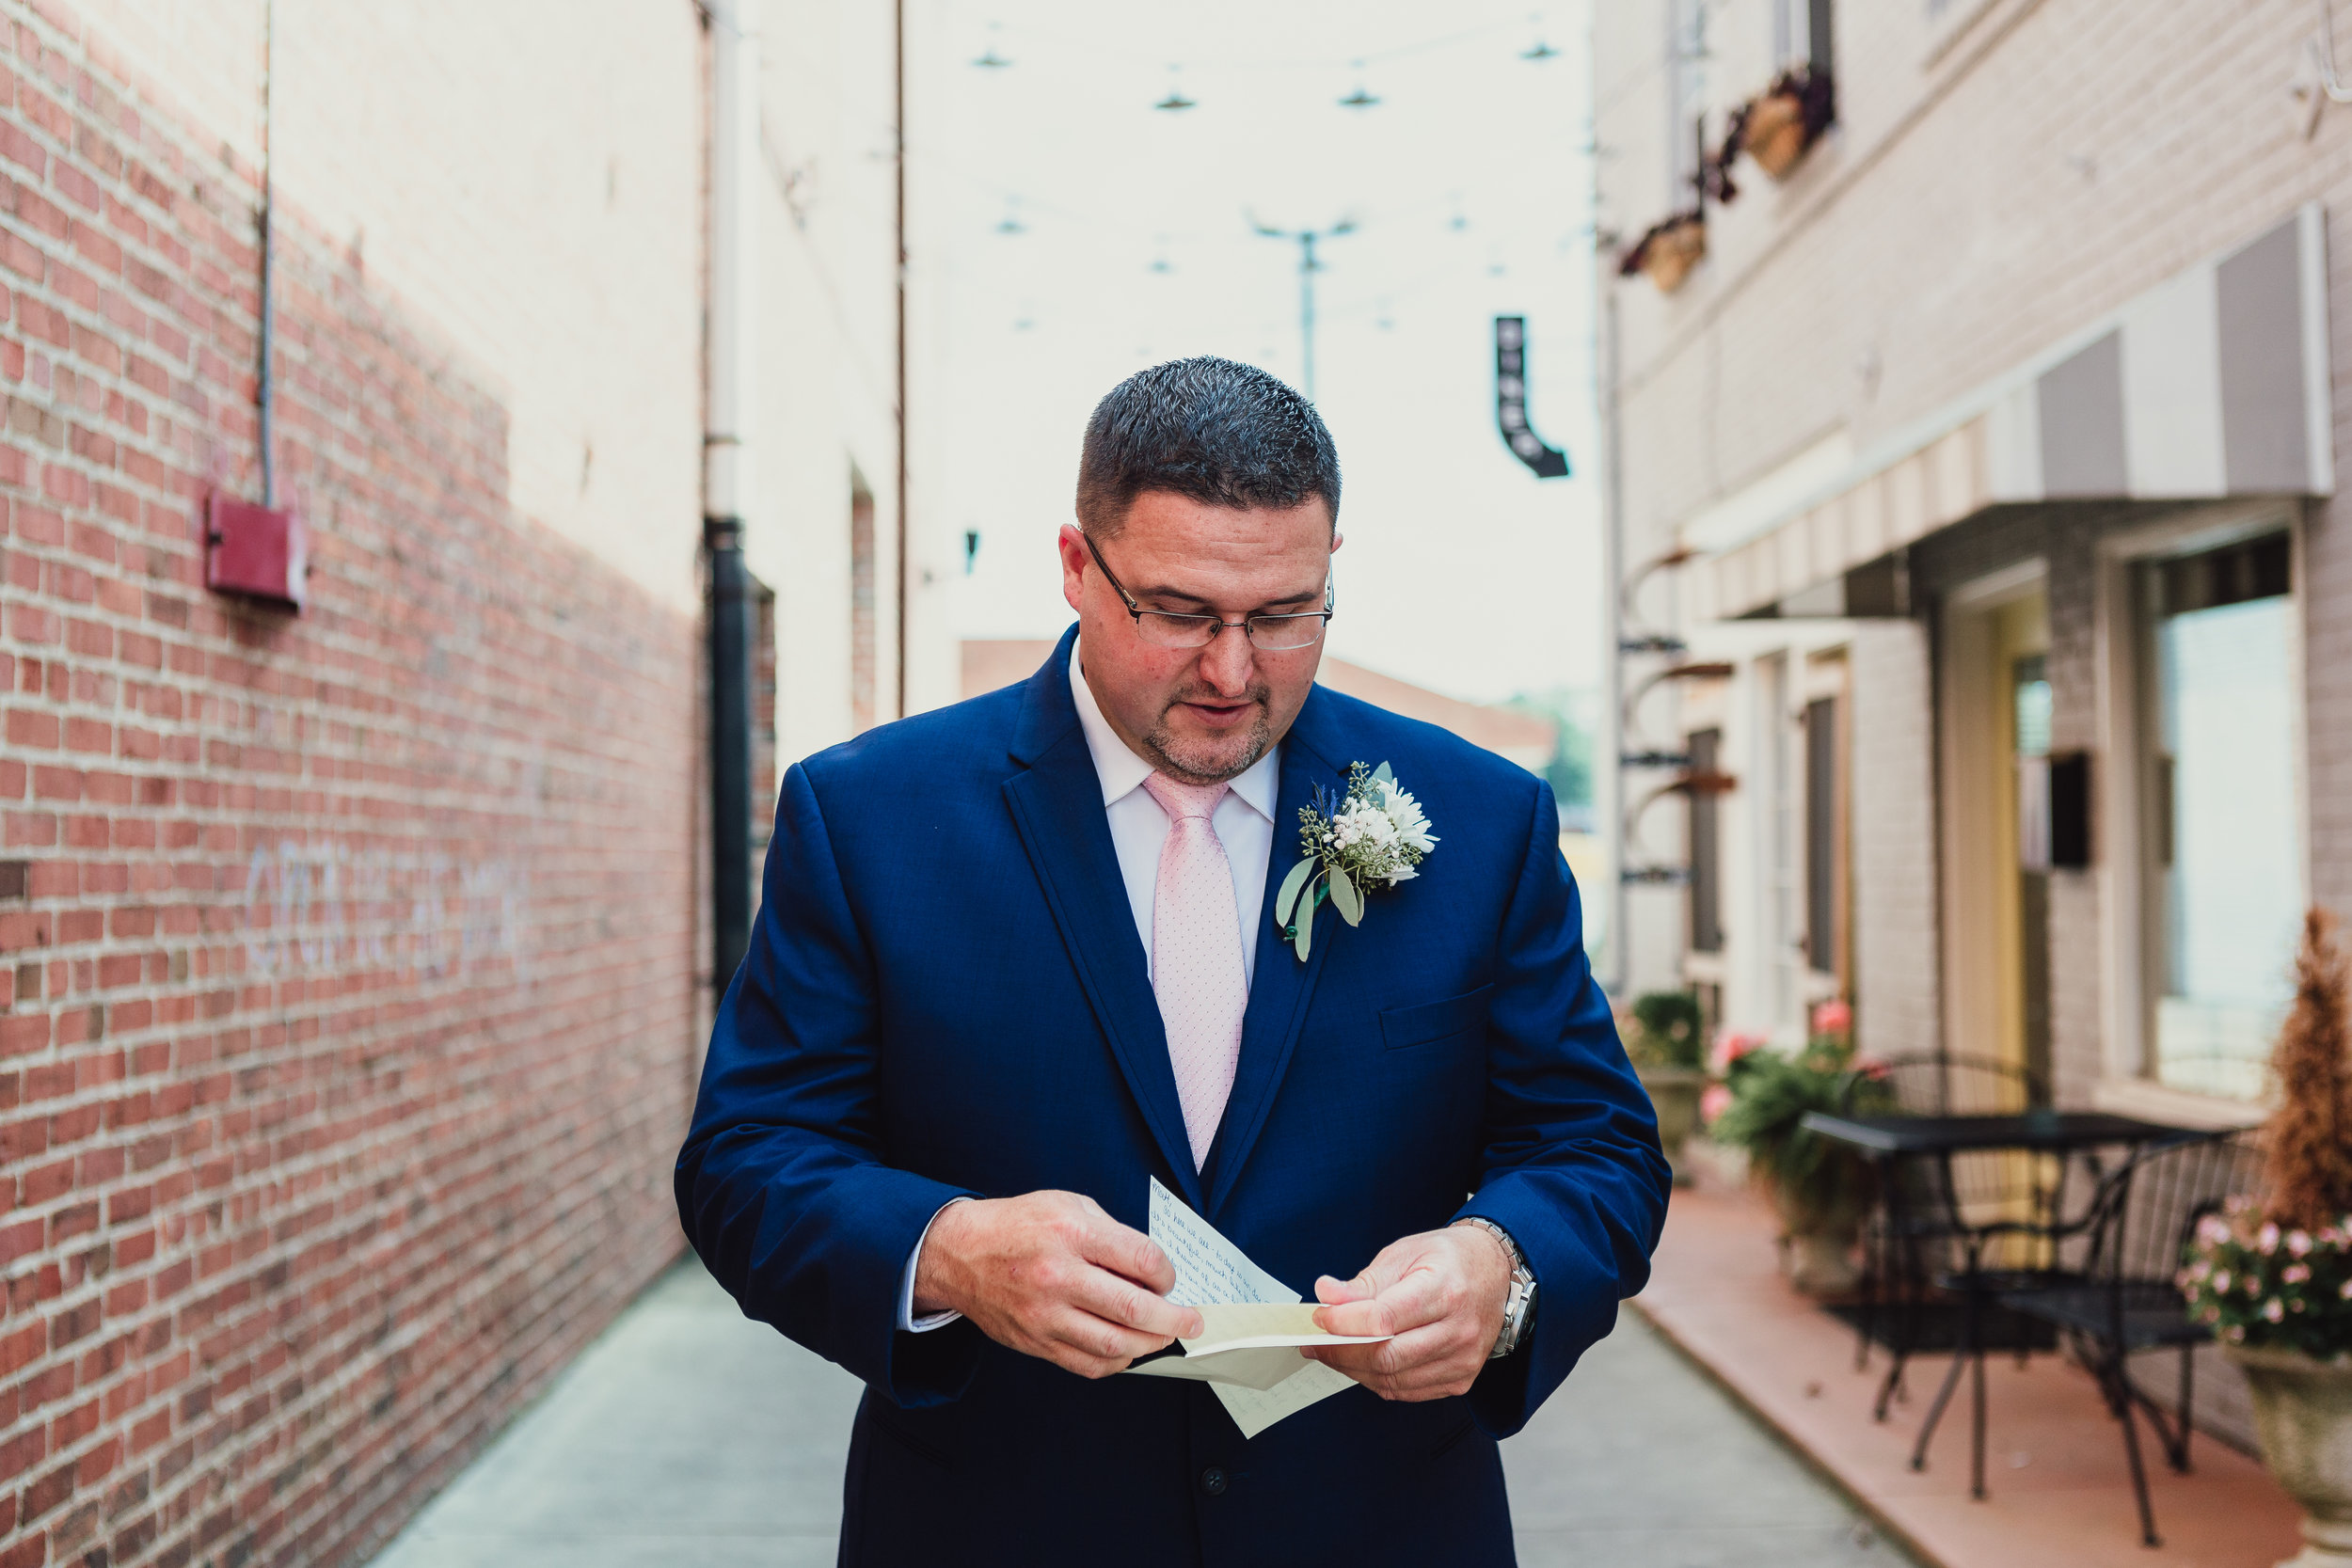 east-tn-wedding-photographer-tennessee-elopement-photographer-kingsport-tn-wedding-photographer (324 of 1001).jpg